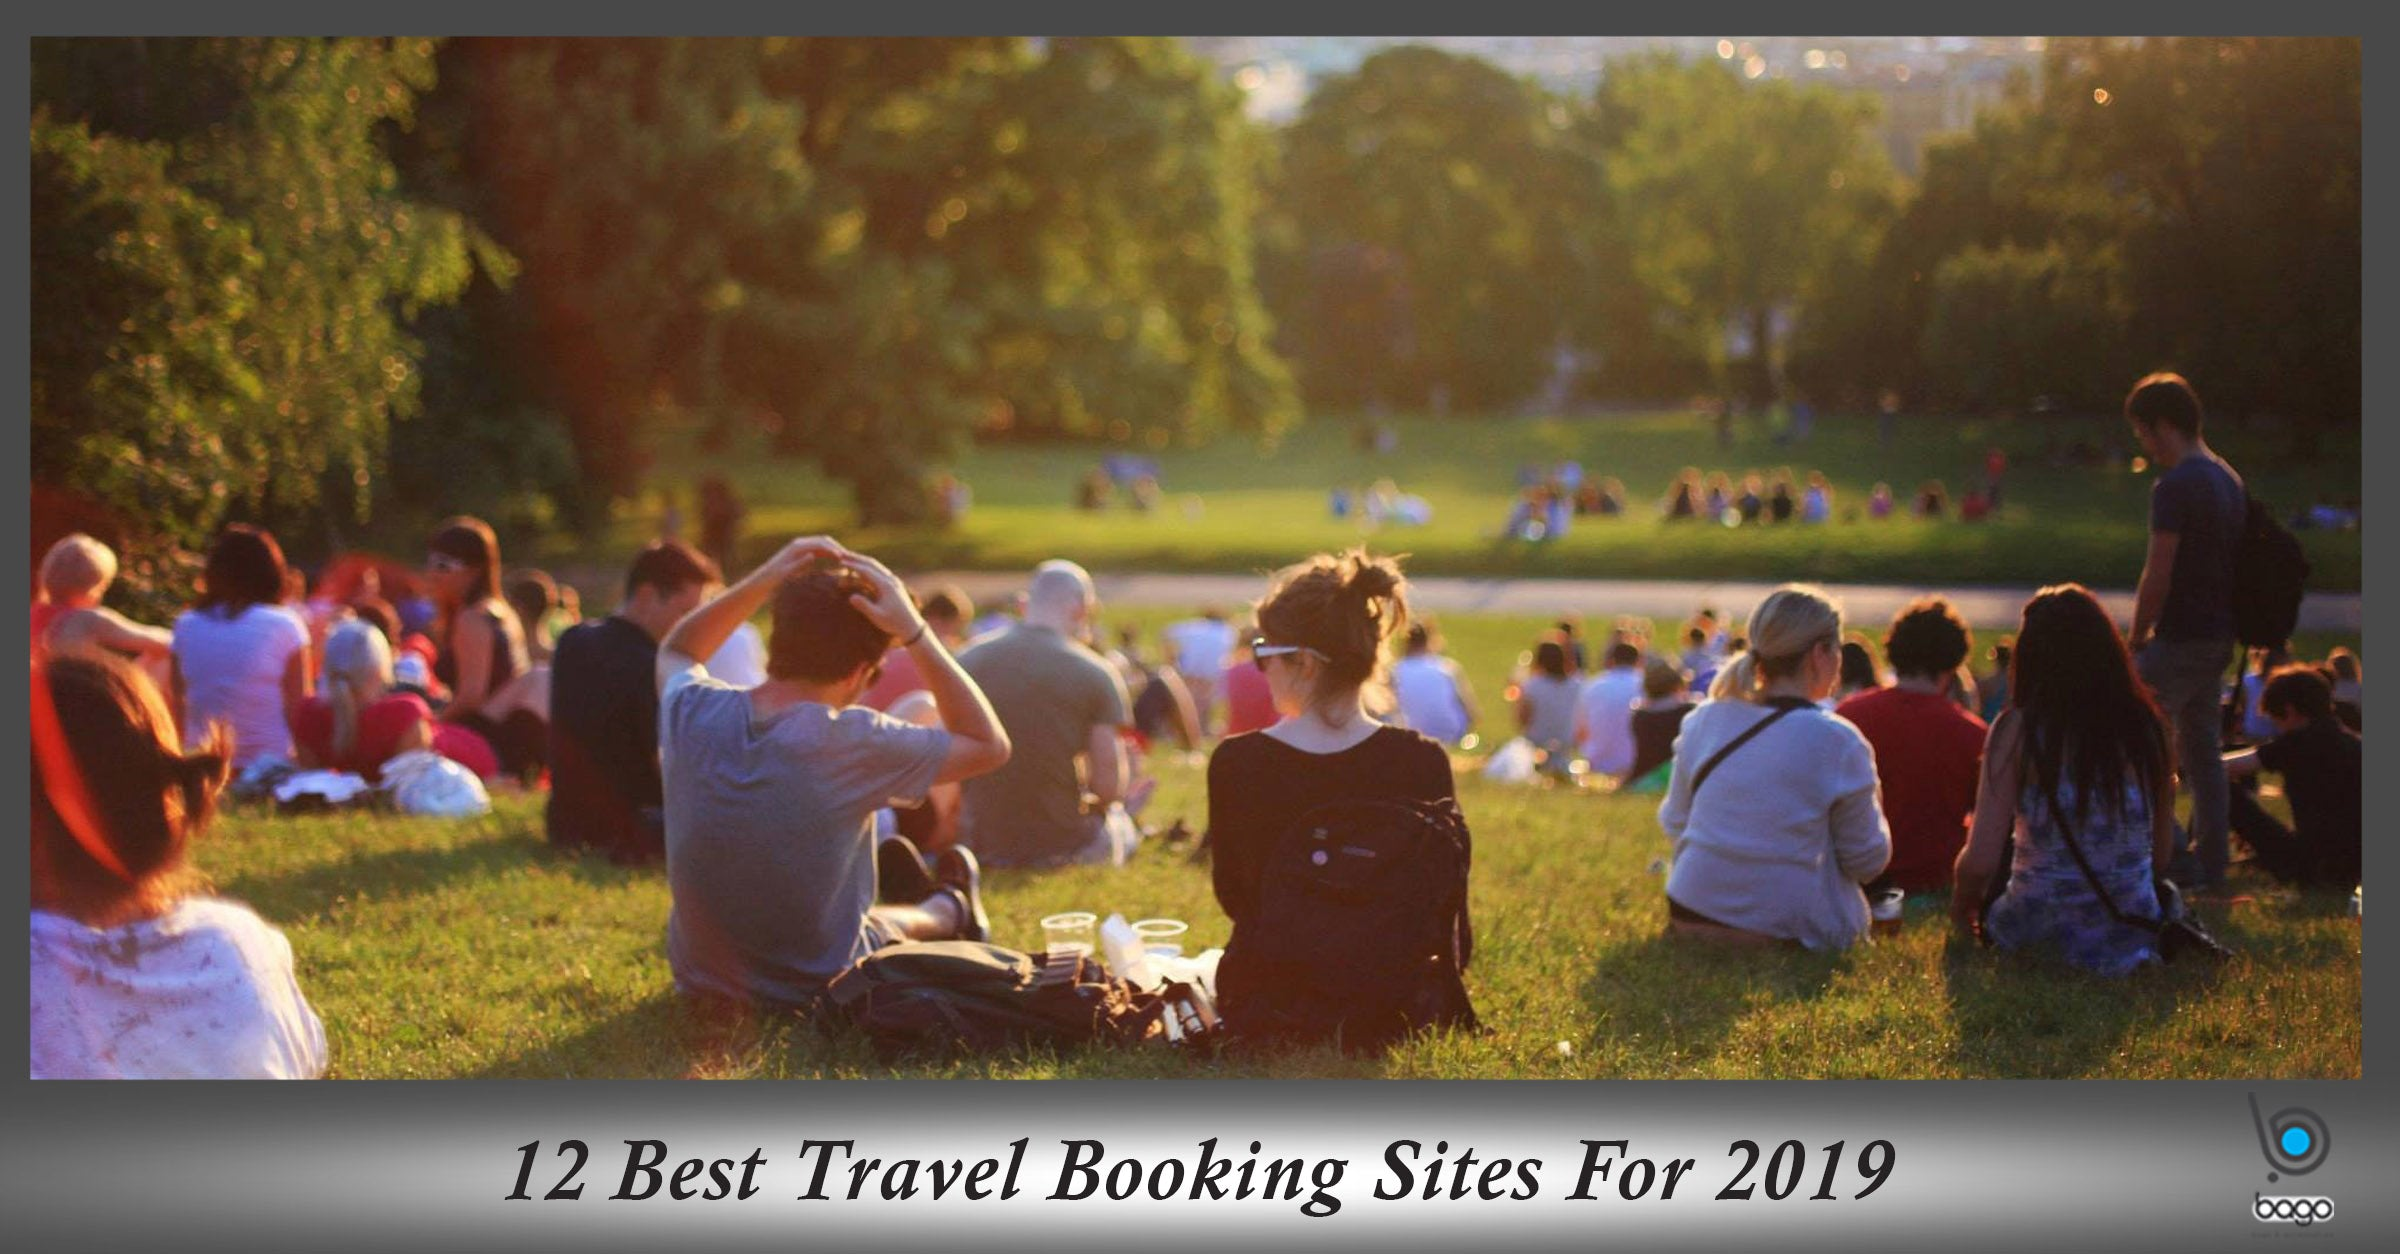 12 Best Travel Booking Sites For 2018